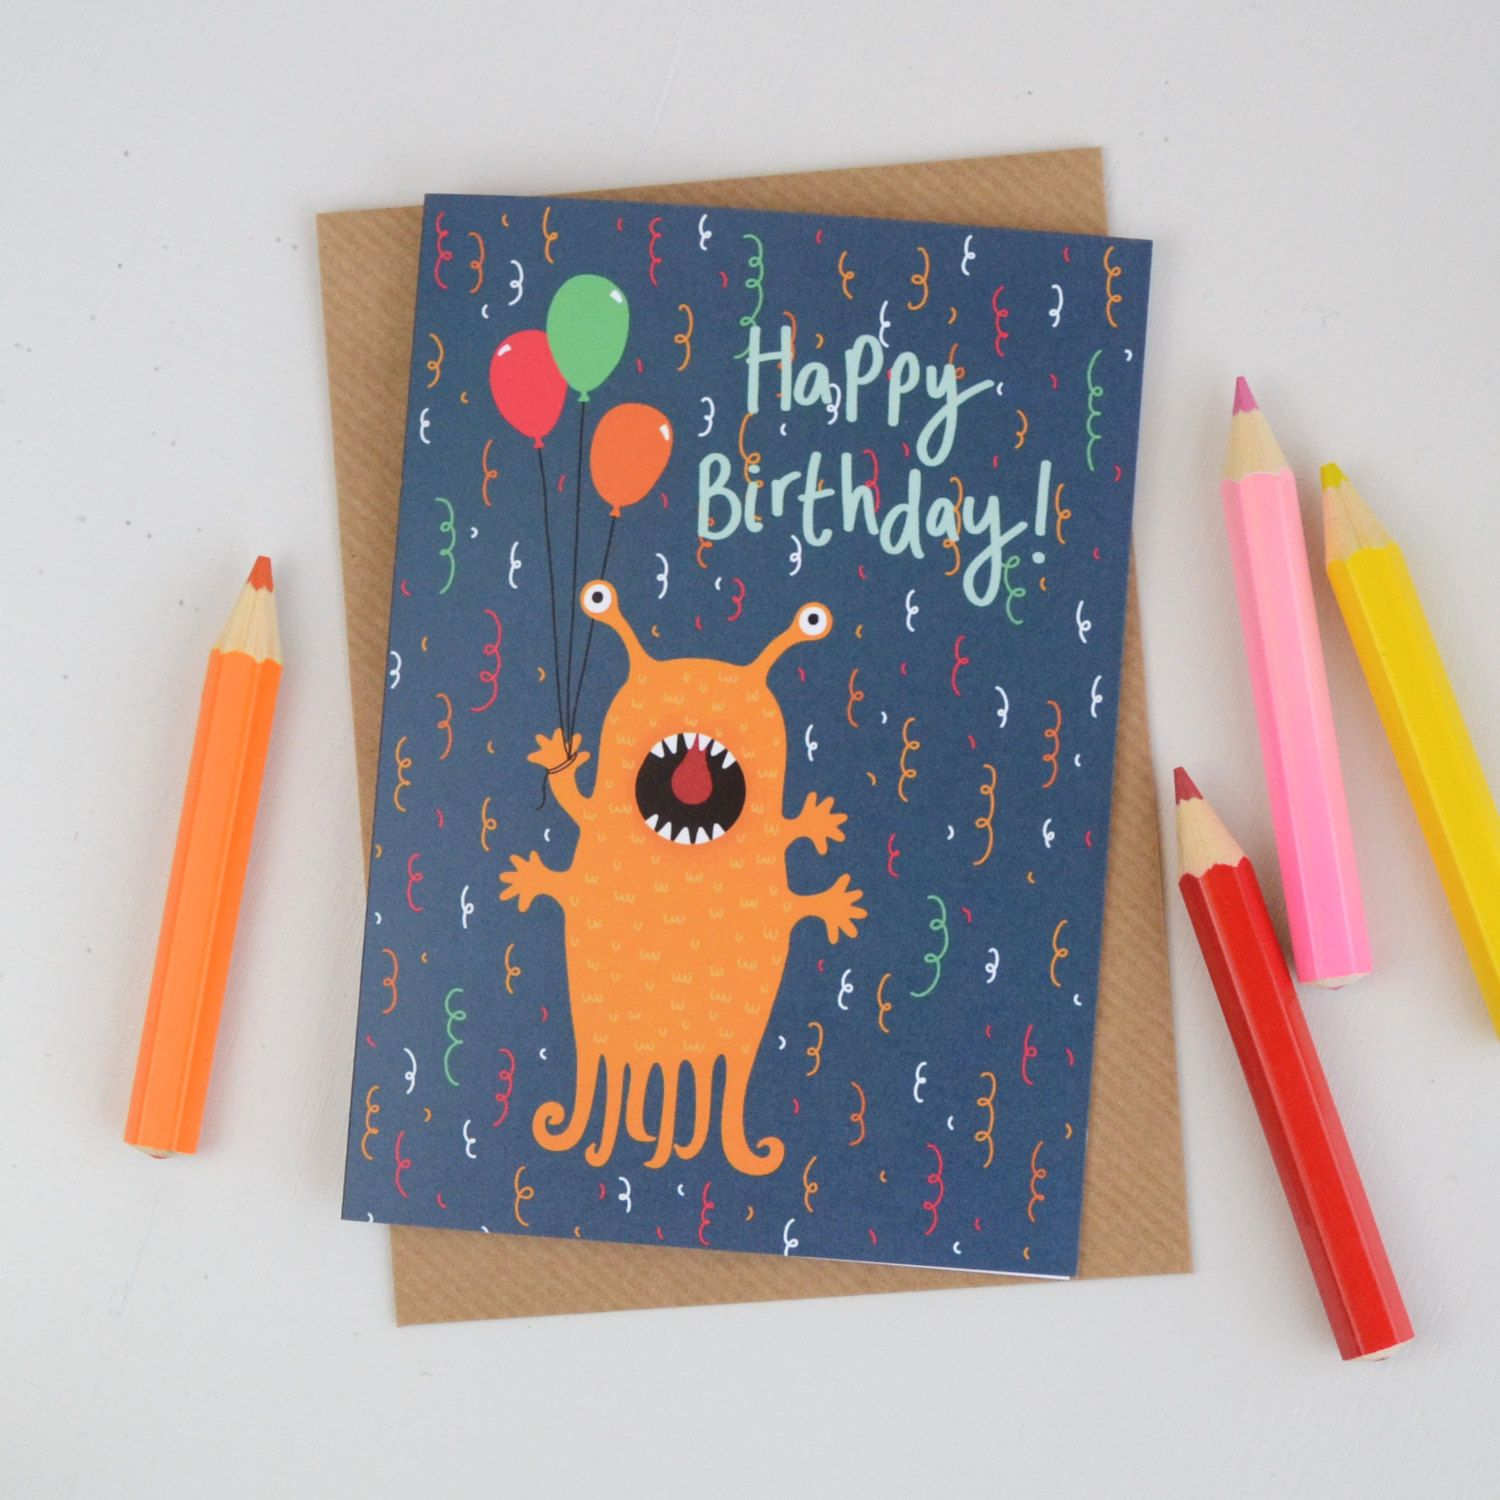 New to hannahstevensshop on etsy alien birthday card childrens new to hannahstevensshop on etsy alien birthday card childrens alien birthday card kids birthday card illustrated greetings card cards for children gbp kristyandbryce Choice Image